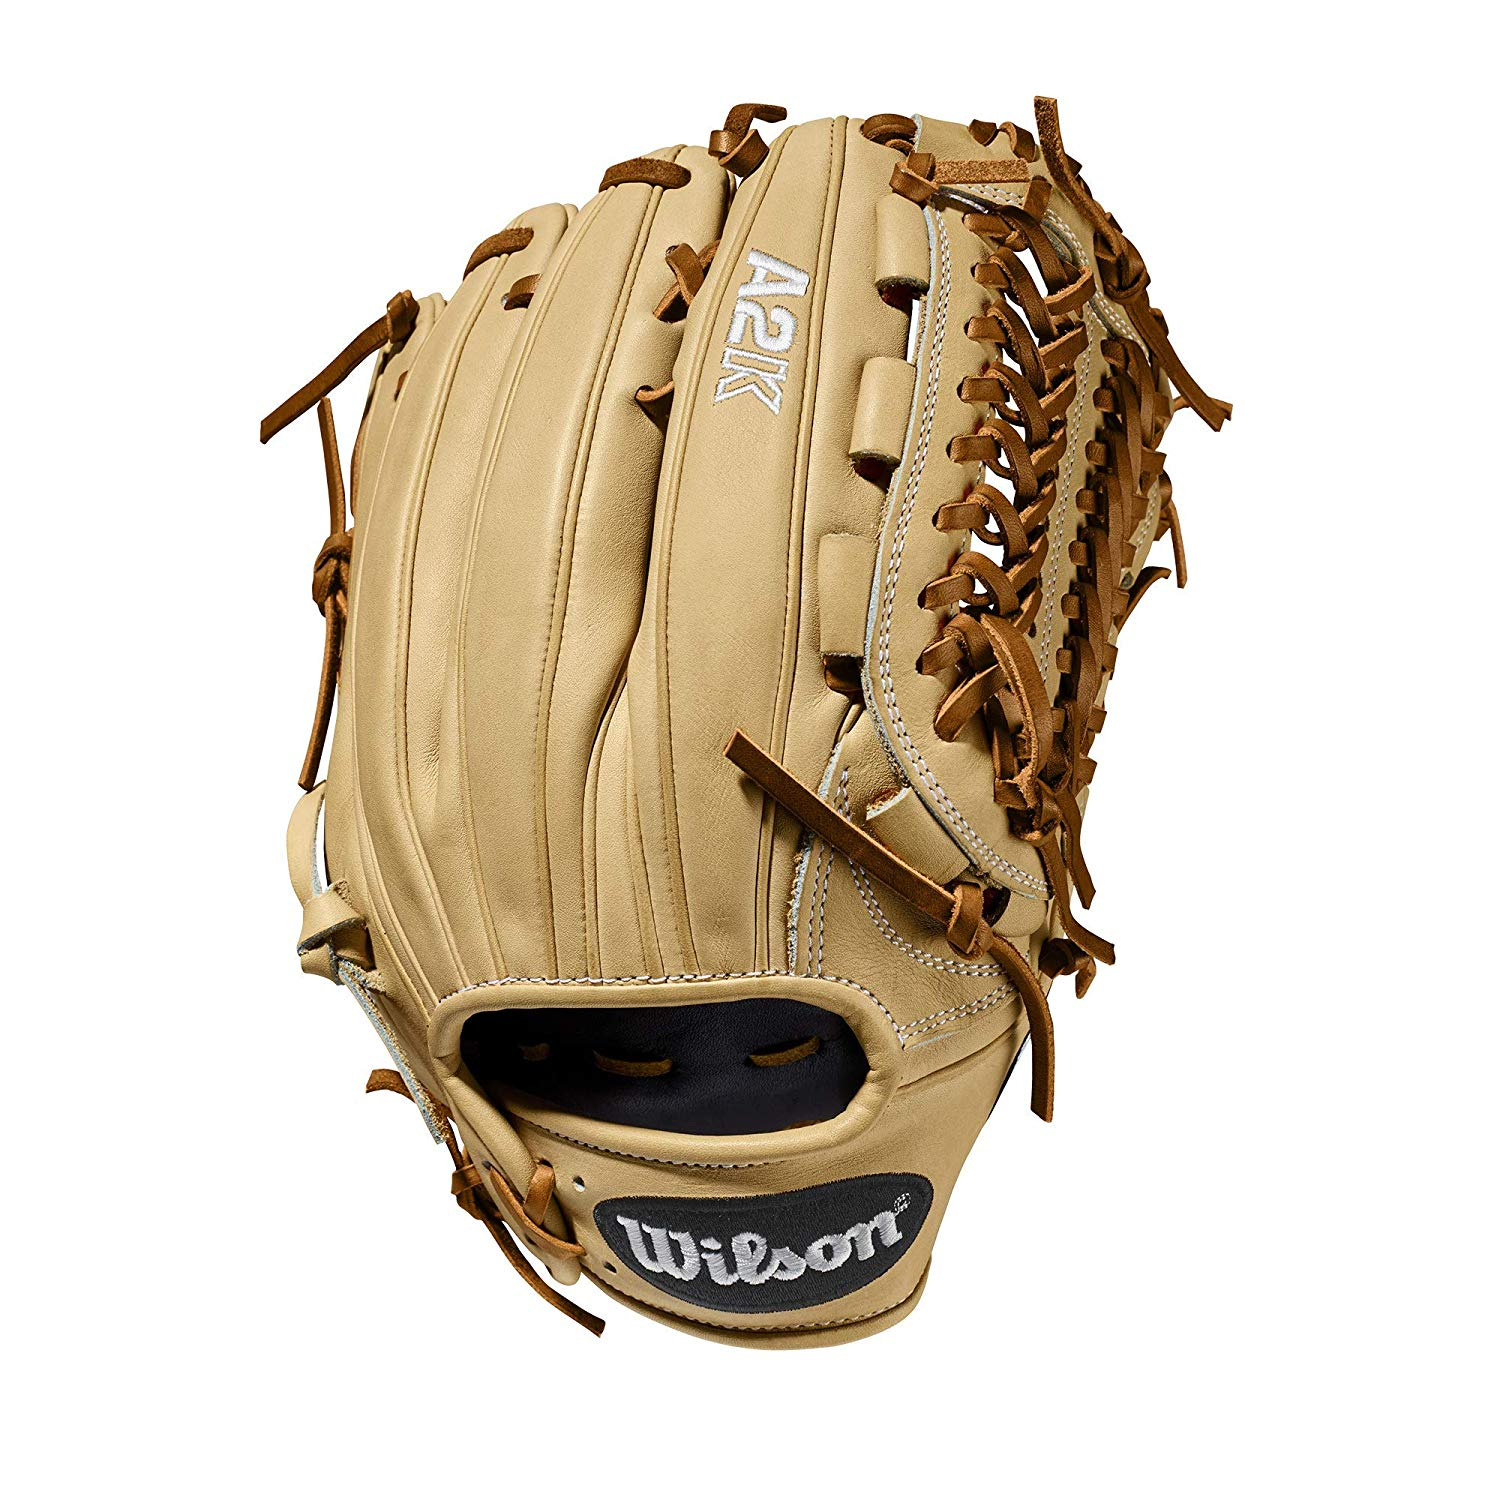 wilson-a2k-baseball-glove-11-75-d33-right-hand-throw WTA2KRB20D33-RightHandThrow Wilson 887768815240 Since 1957 Wilson Glove Days have been an annual tradition at